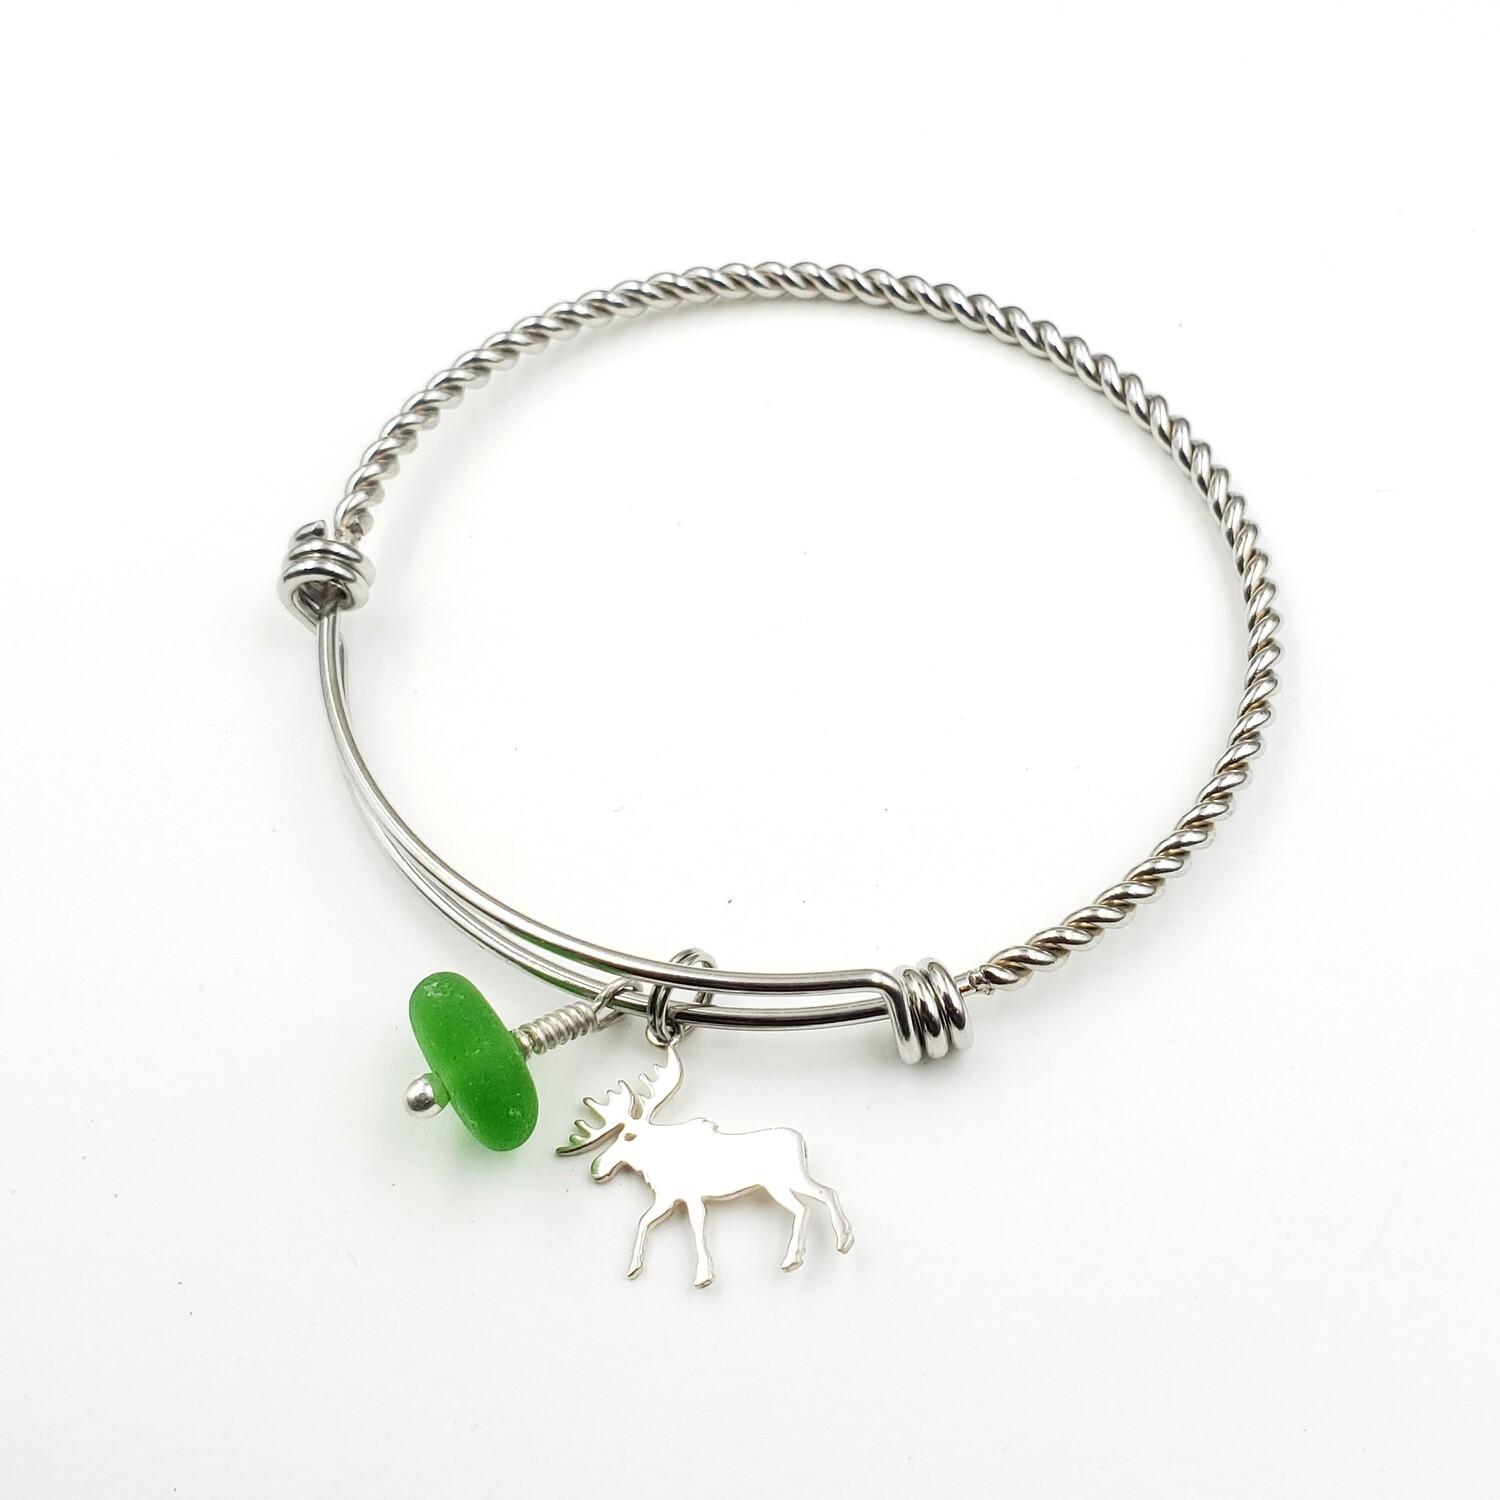 Twisted Bangle Bracelet with Moose Charm and Green Lake Erie Beach Glass